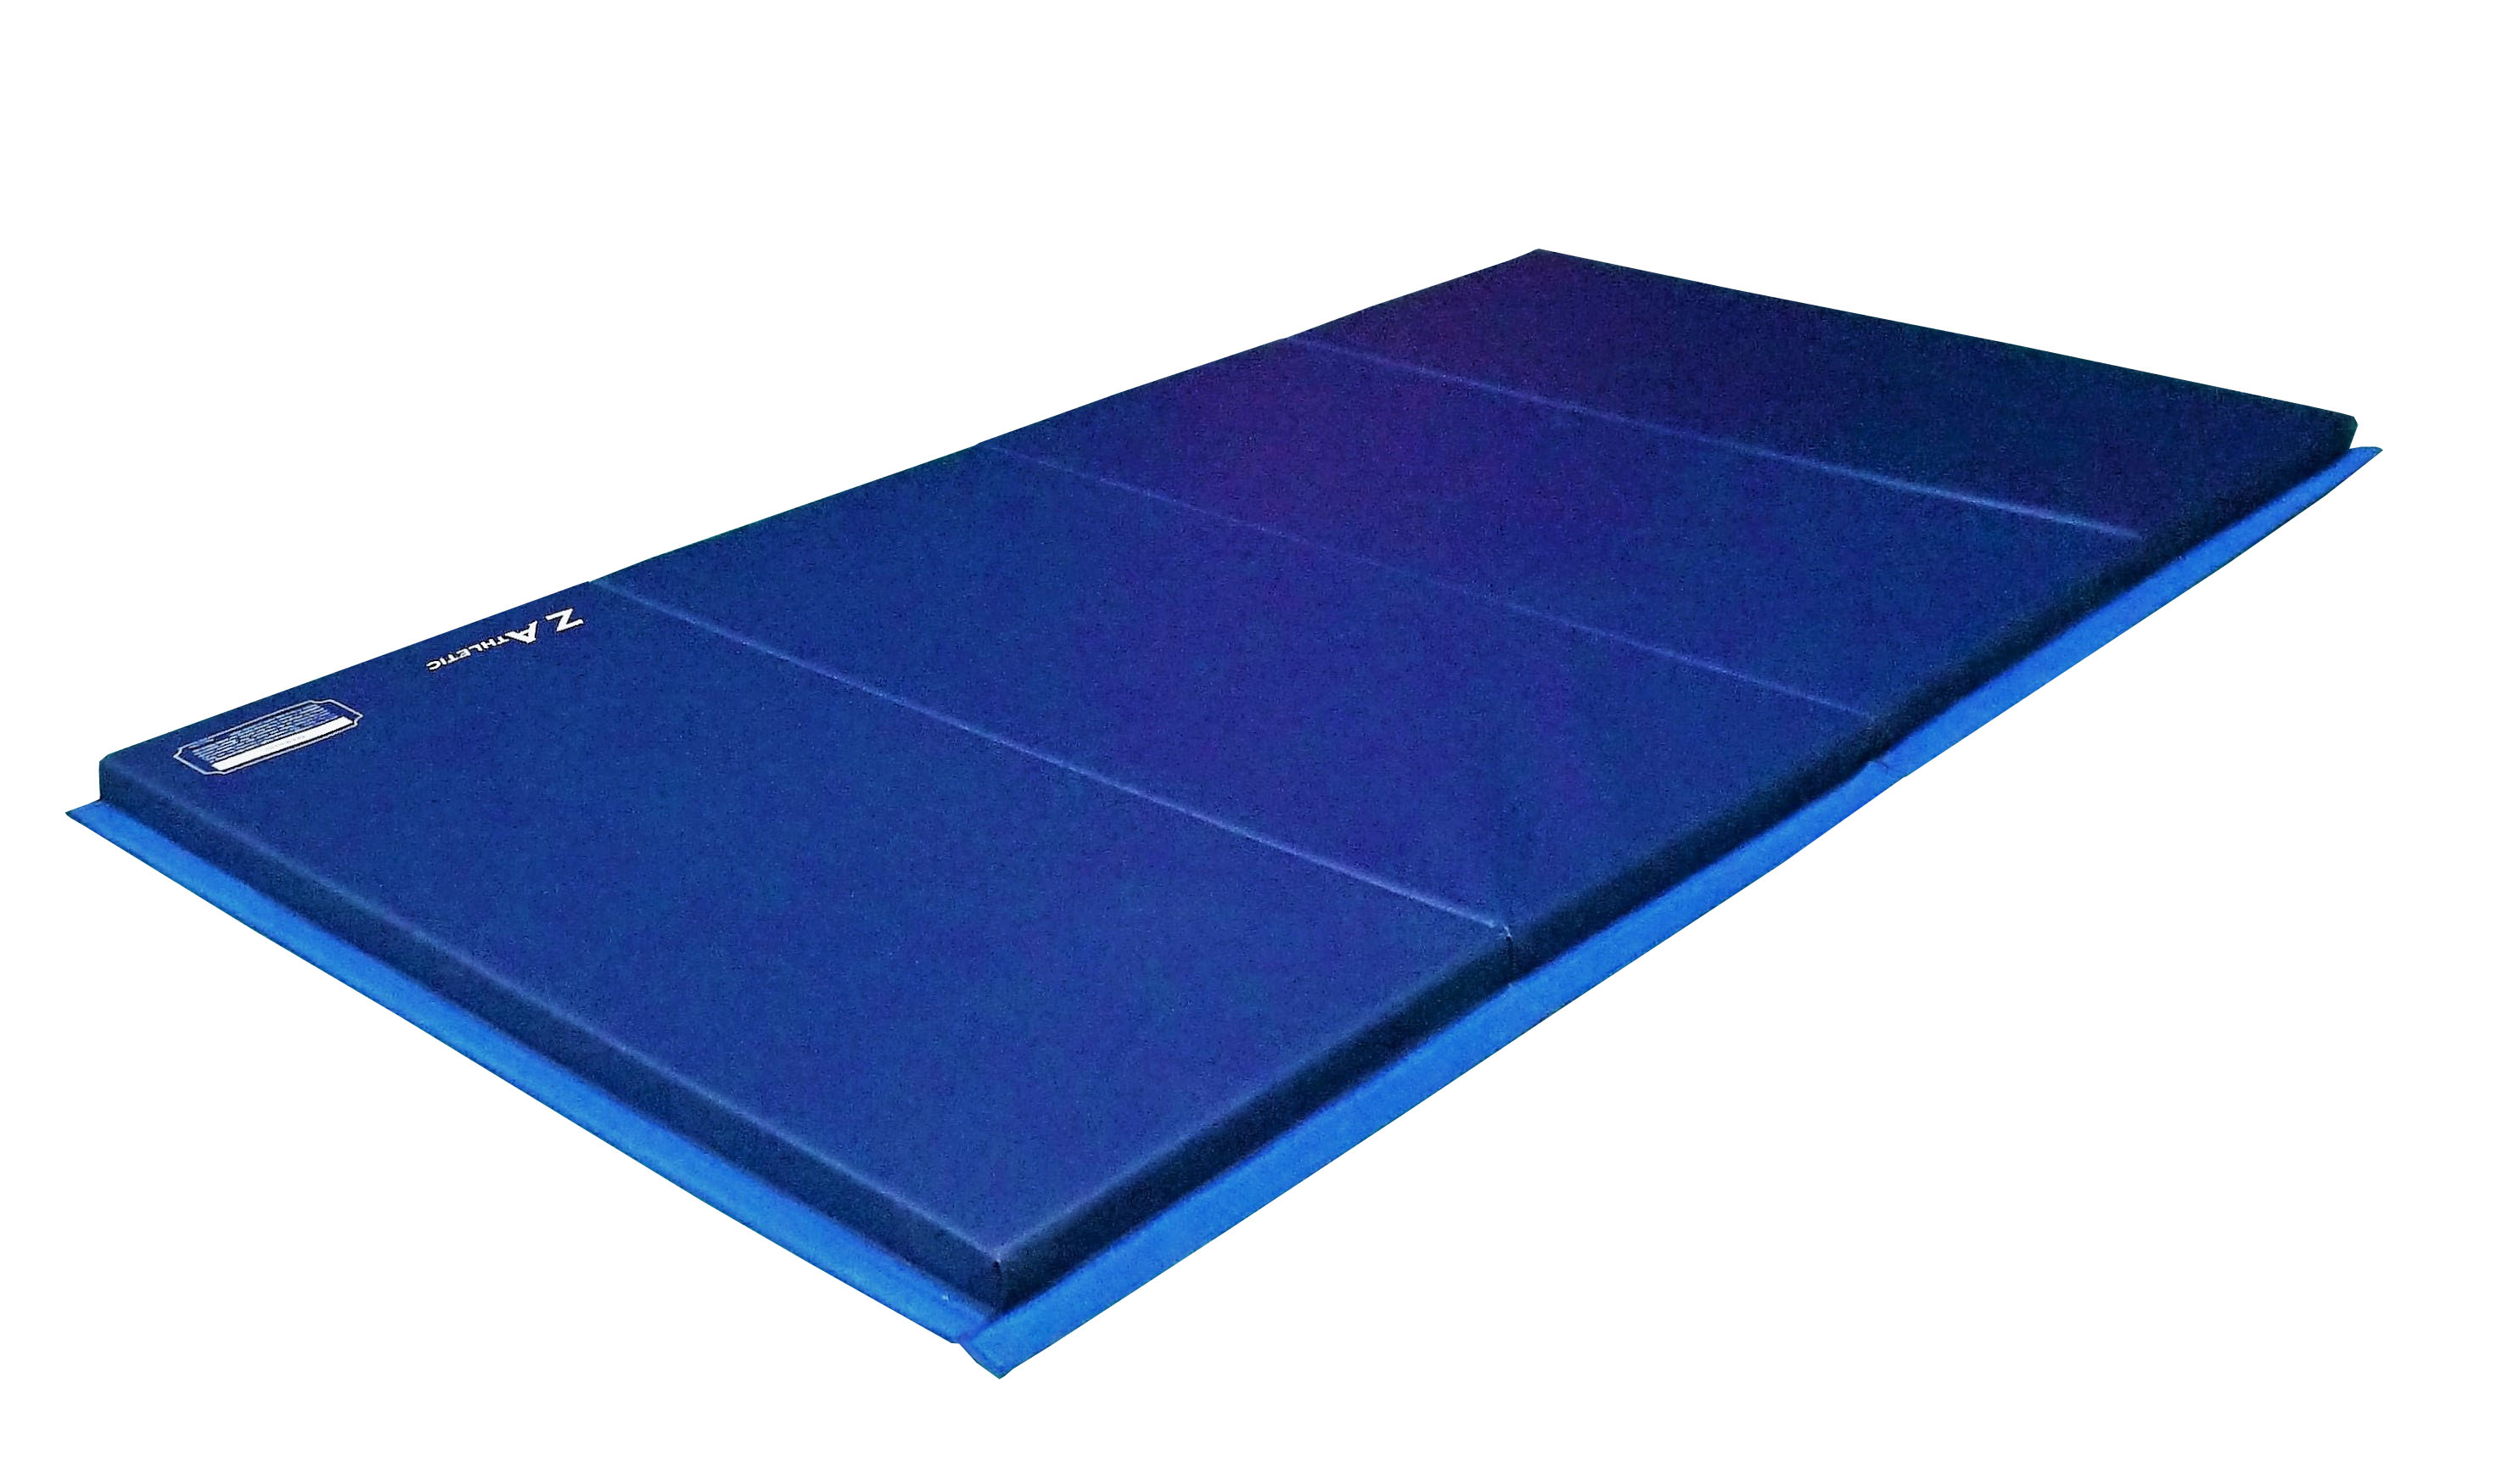 wedge training triangle yellow folding mats incline pin gymnastics mat blue used foam